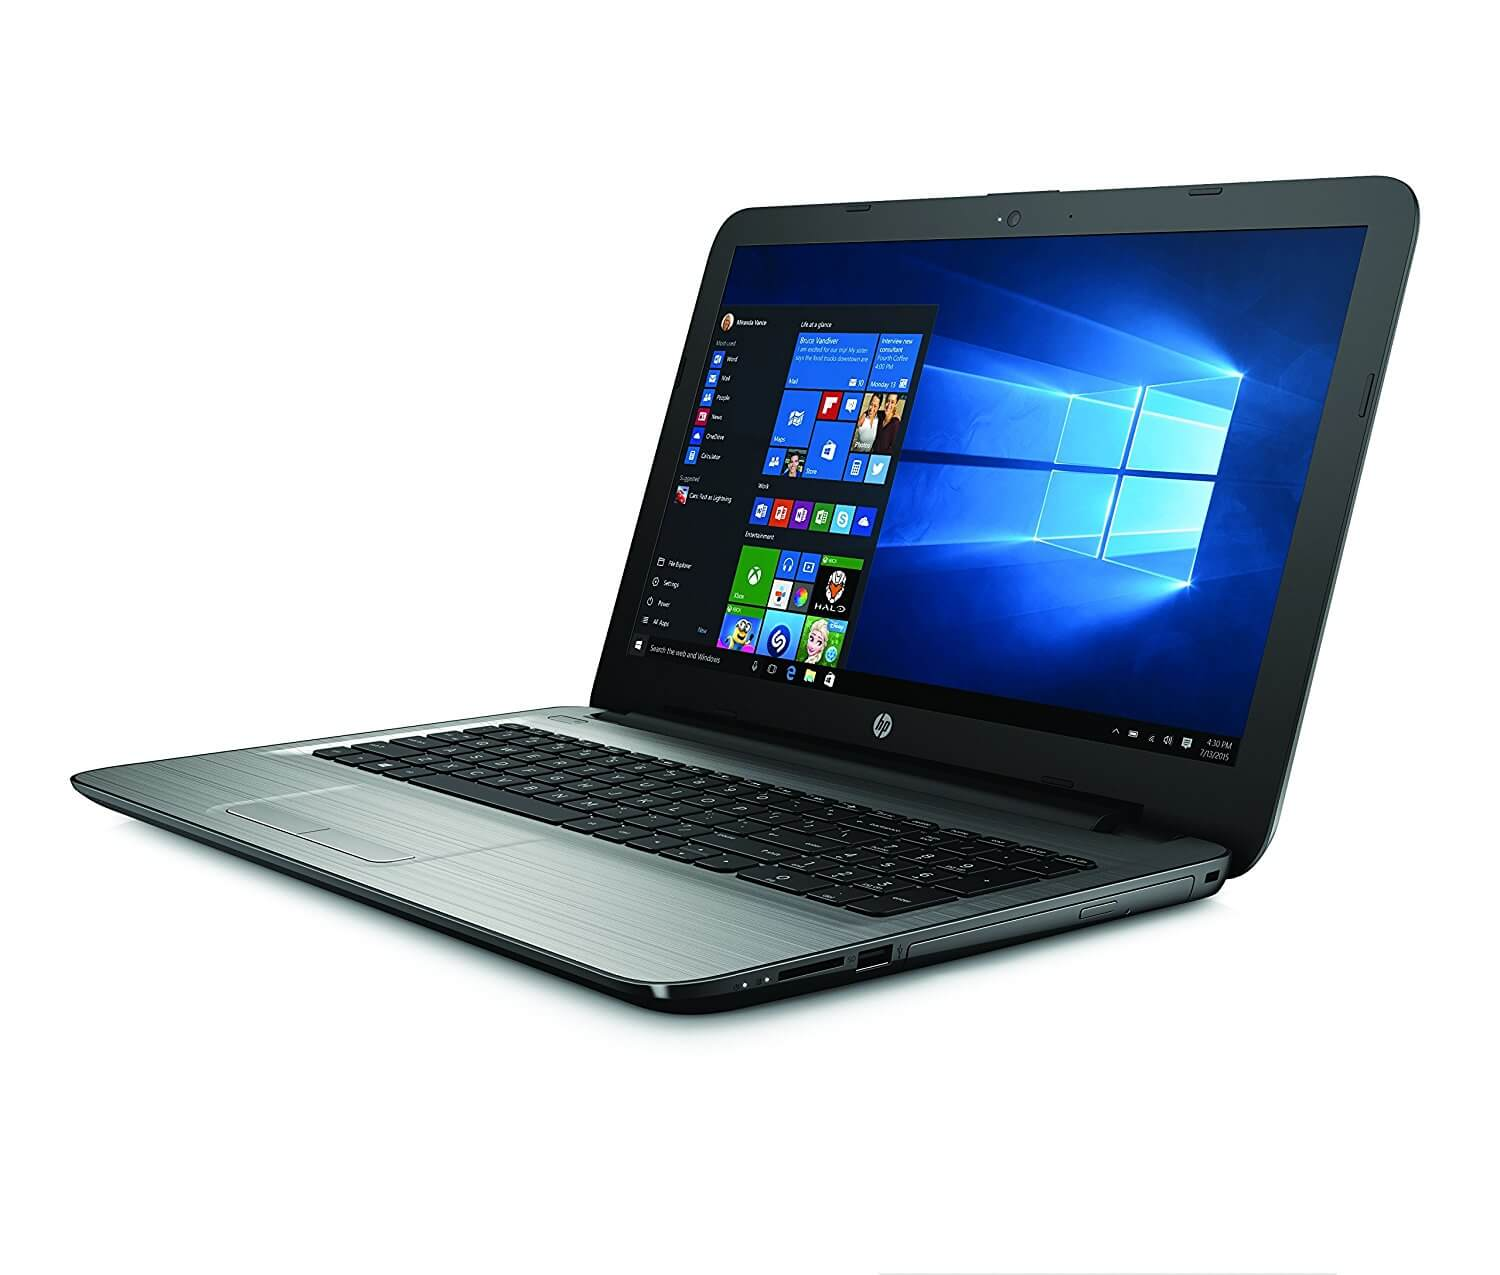 Gaming Laptop under 500 uk: (£529.99) HP 15-ba047na 15.6-Inch AMD A12 with AMD Radeon R7 Graphics